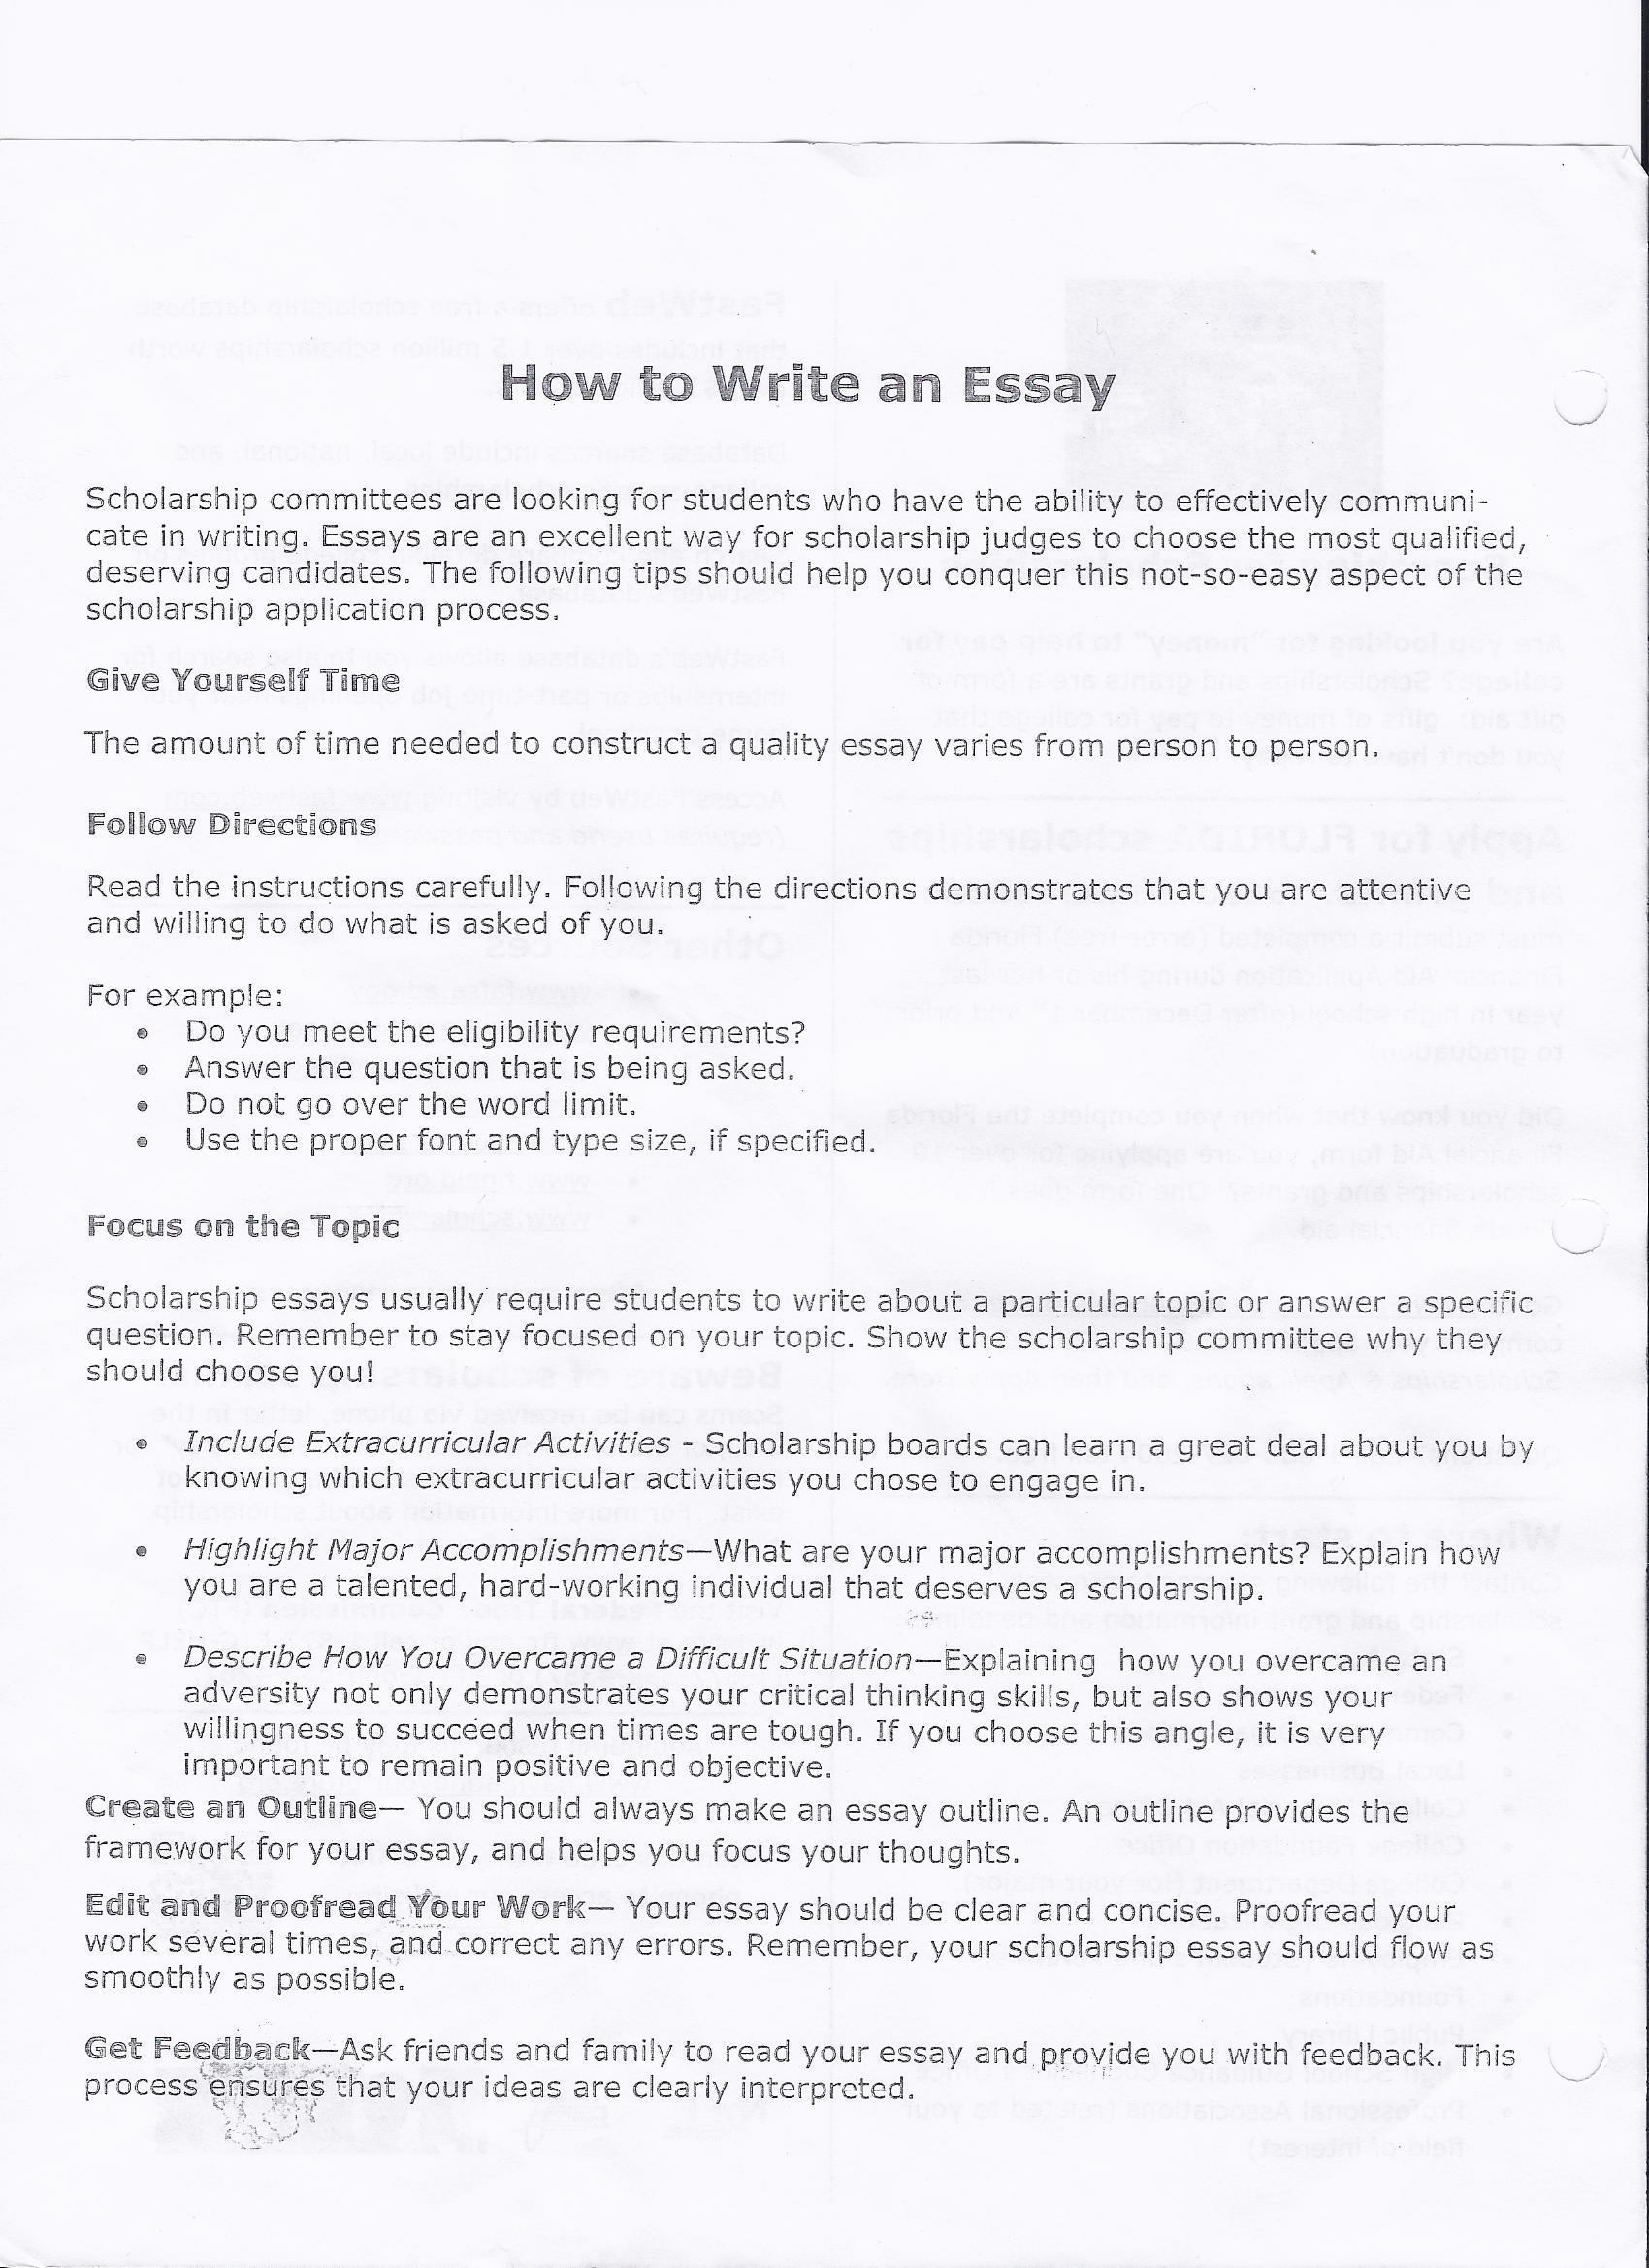 Writing an essay in college